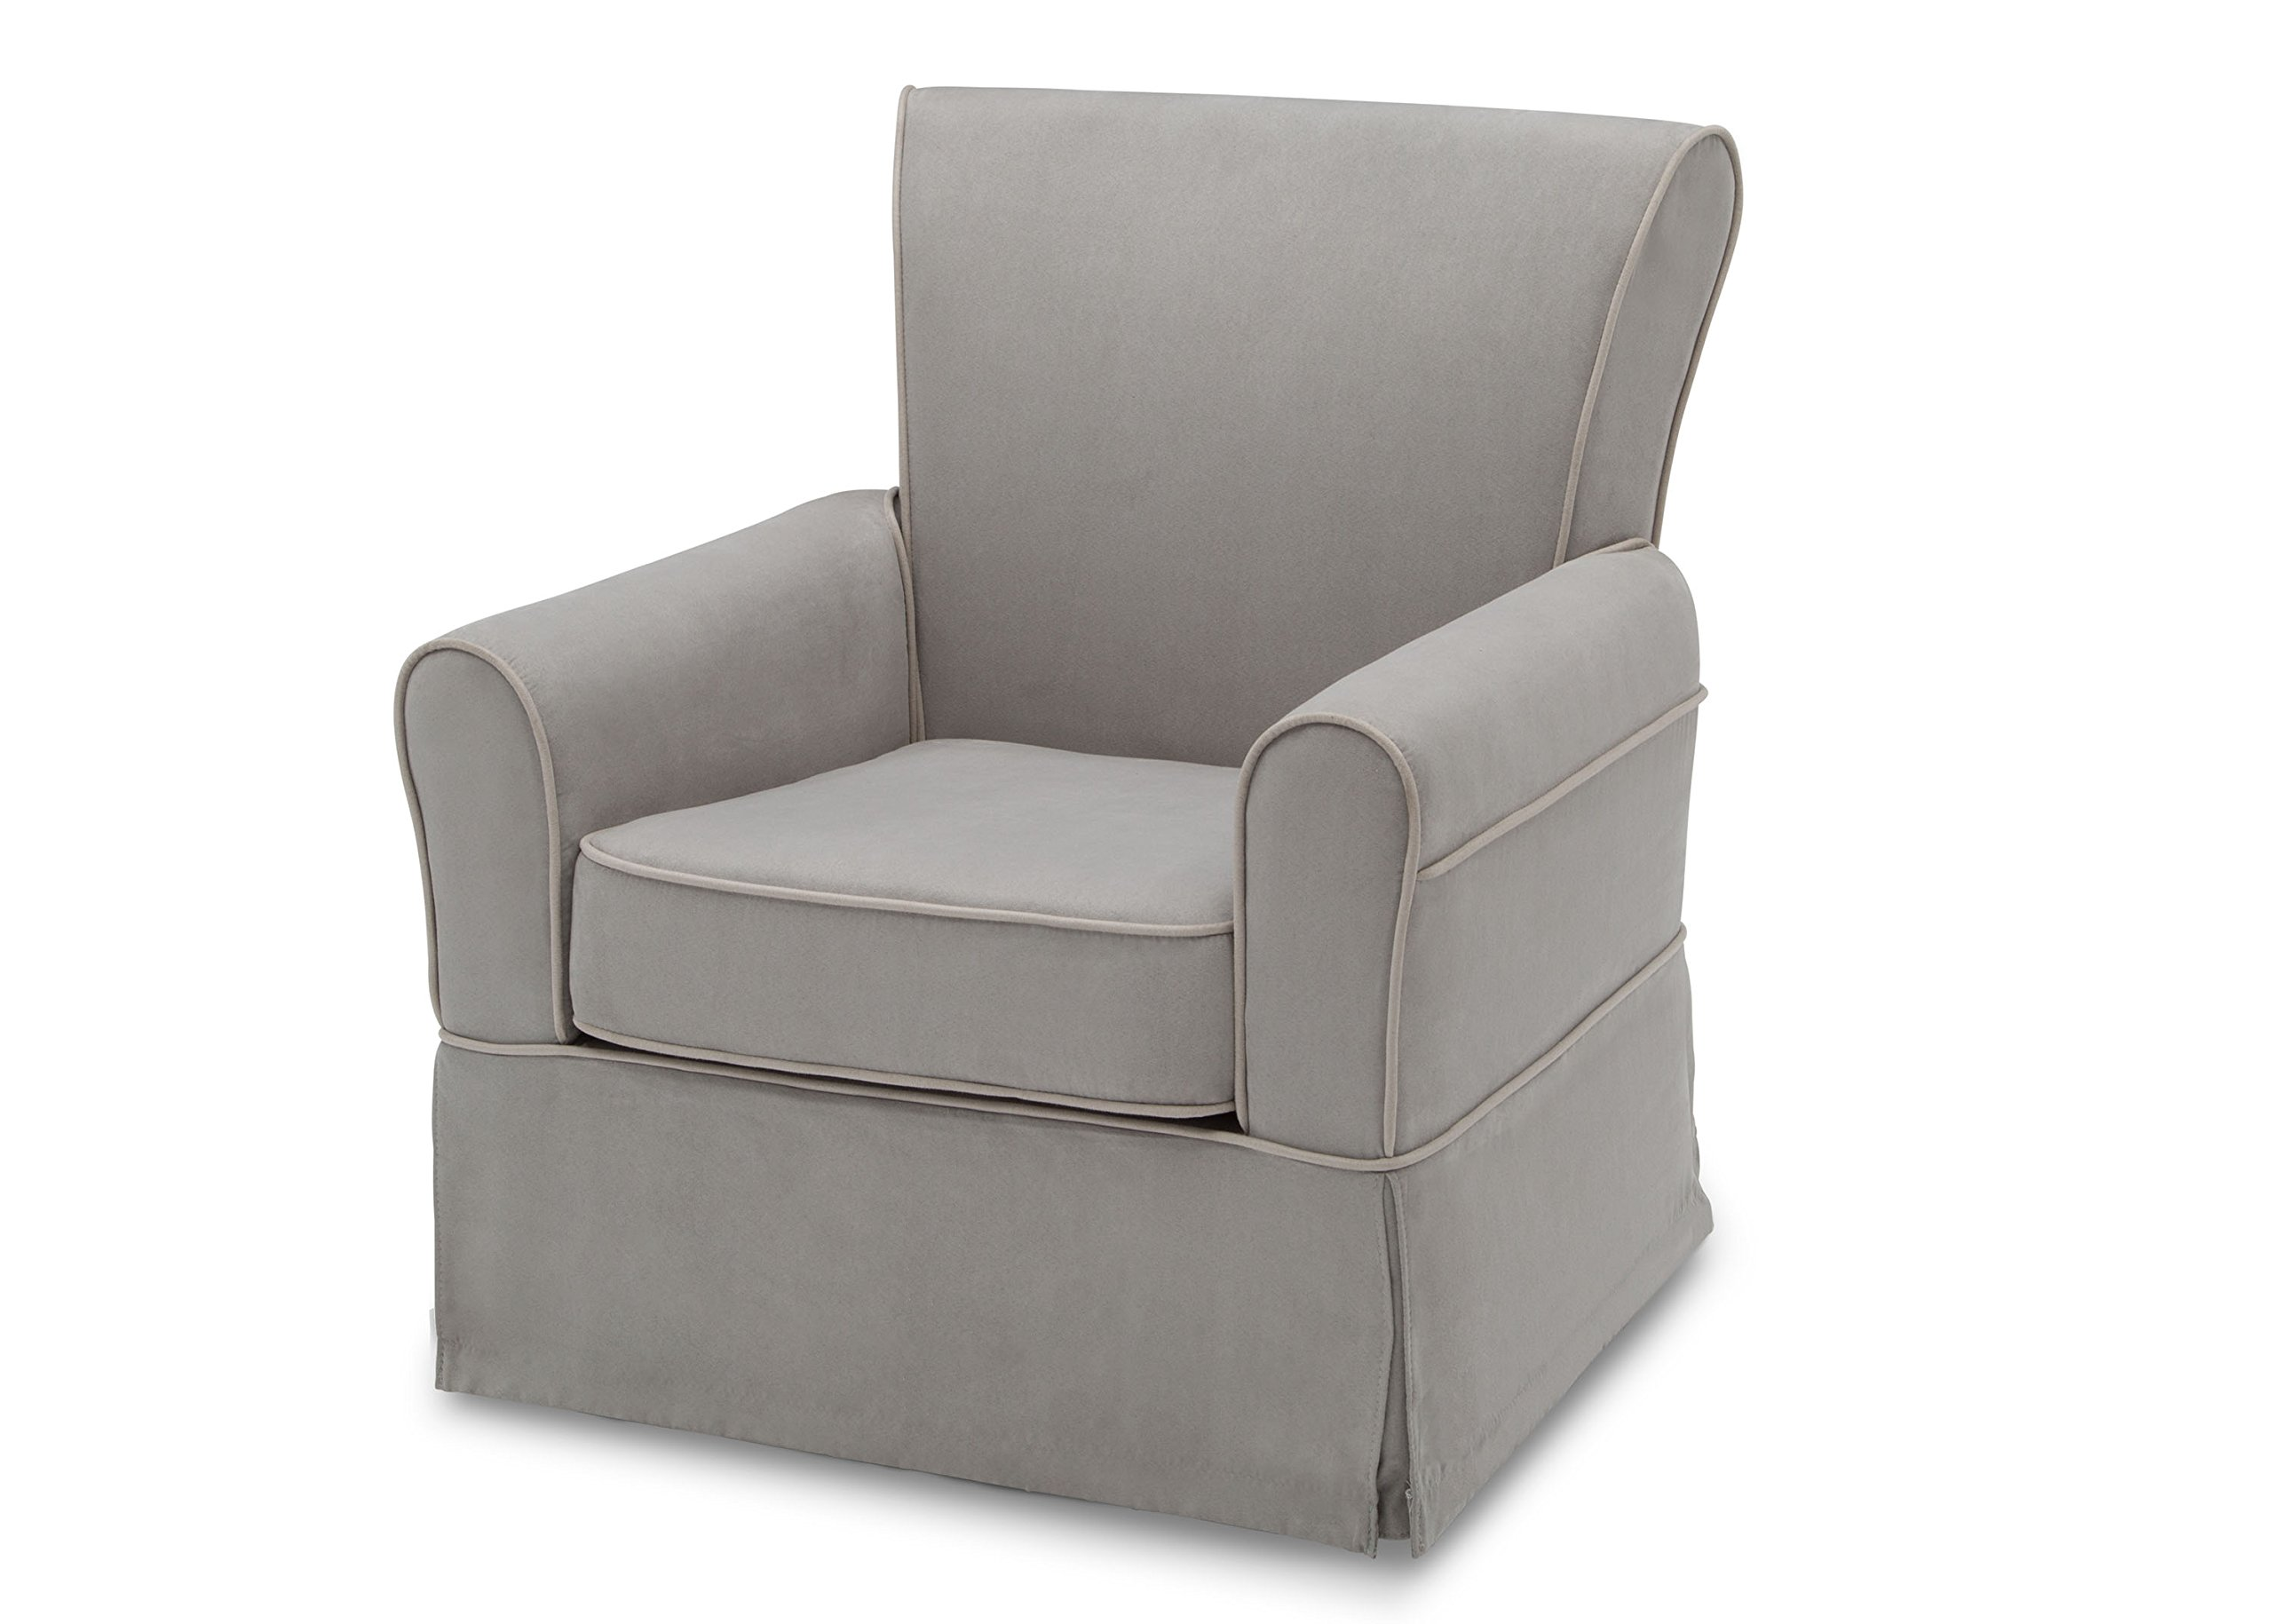 Delta Furniture Benbridge Upholstered Glider Swivel Rocker Chair, Dove Grey with Soft Grey Welt